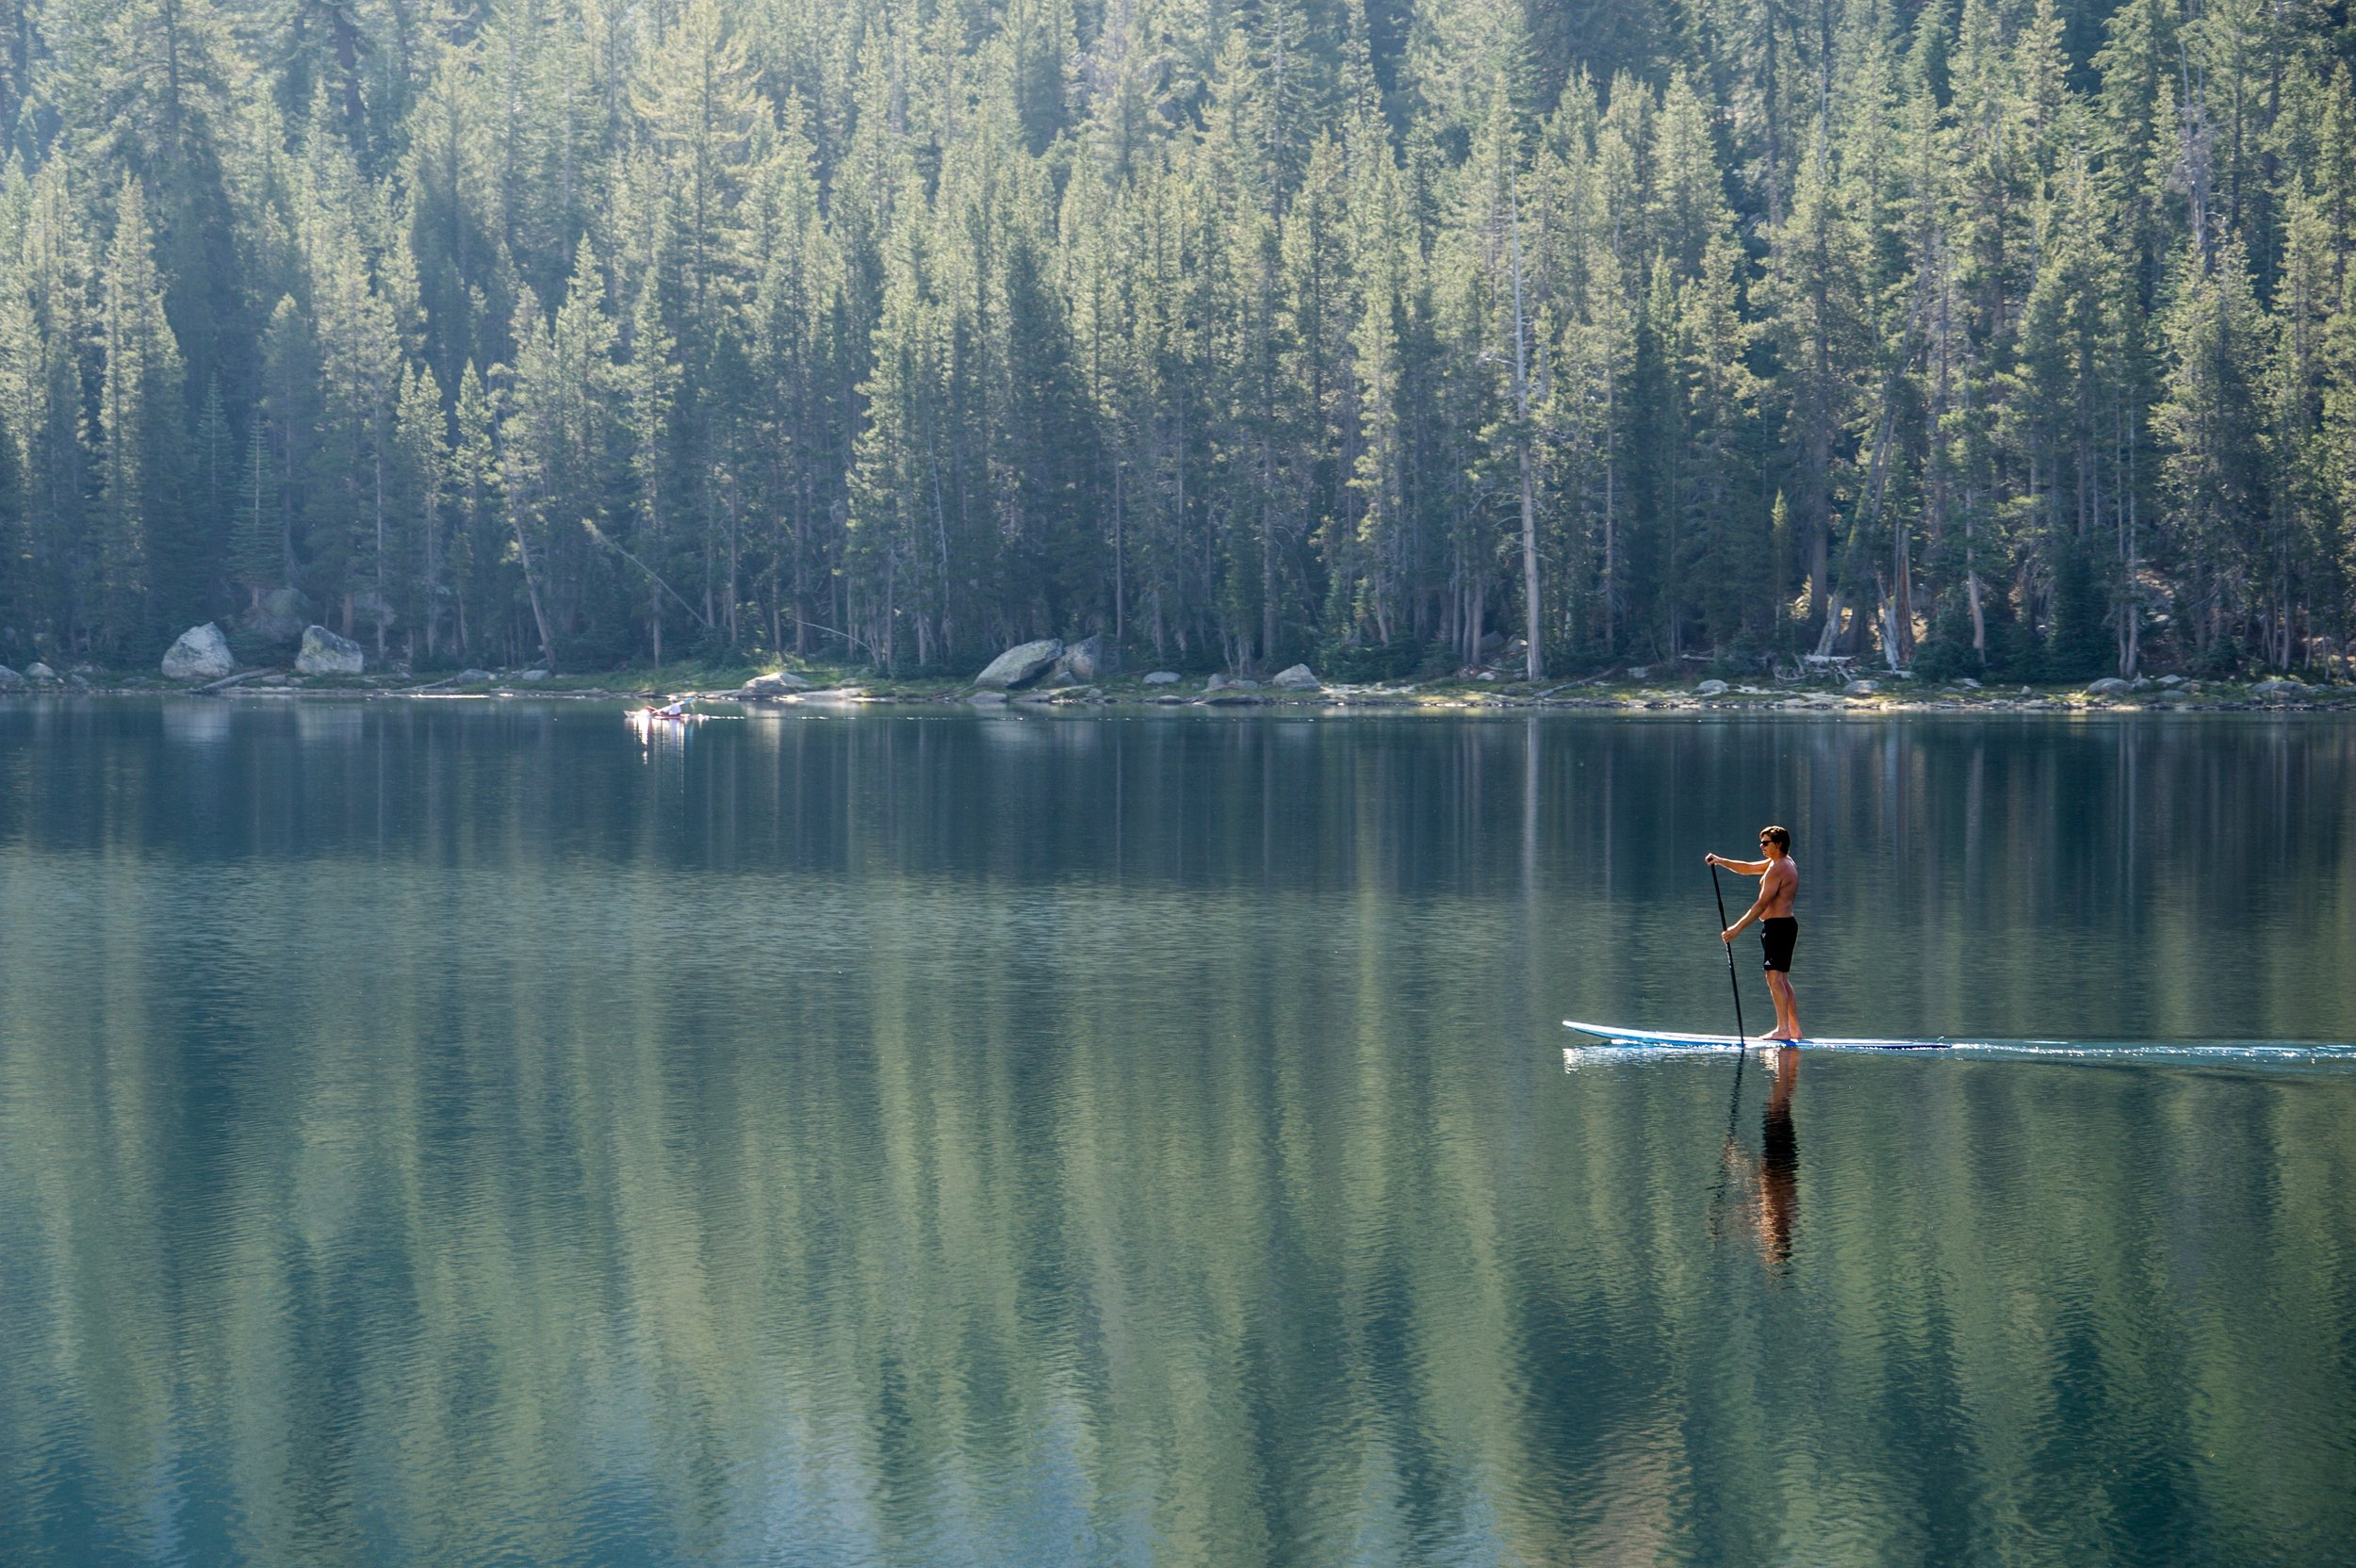 man paddling through still lake by a forest